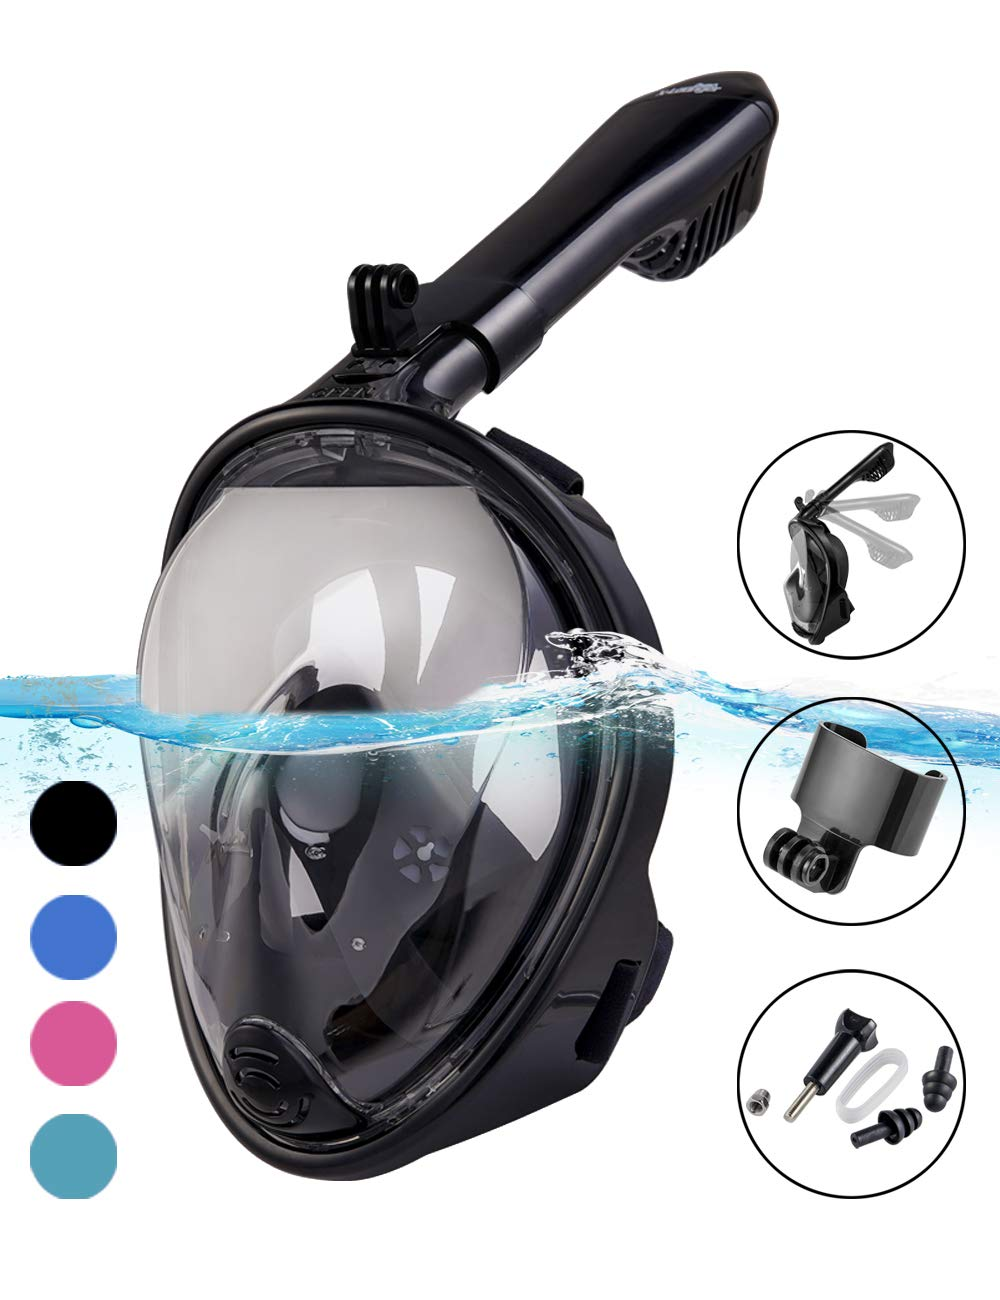 X-Lounger Snorkel Mask, 2019 New Foldable Snorkeling Mask Full Face with Detachable Camera Mount Pivot Arm and Earplug, 180° Large View Easy Breath Dry Top Set Anti-Fog Anti-Leak for Adults Black S M